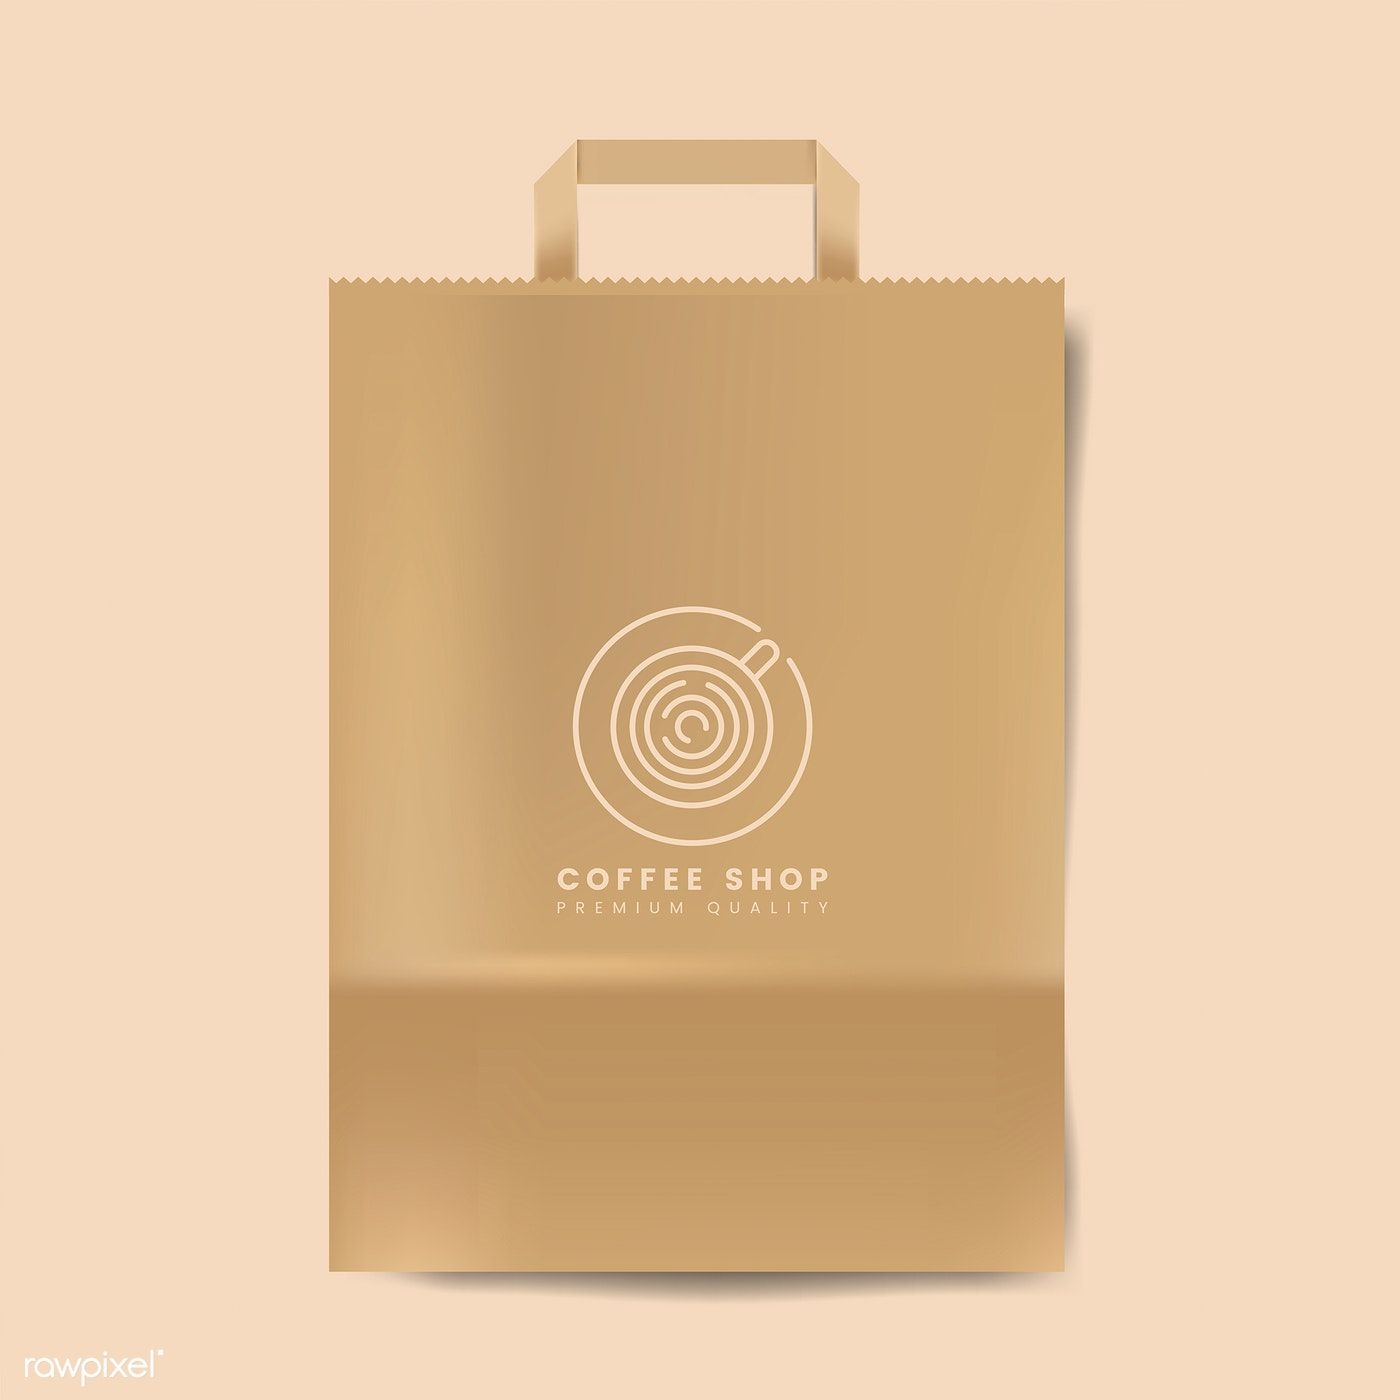 Download Paper Bag Mockup Isolated Vector Free Image By Rawpixel Com Bag Mockup Bags Paper Bag